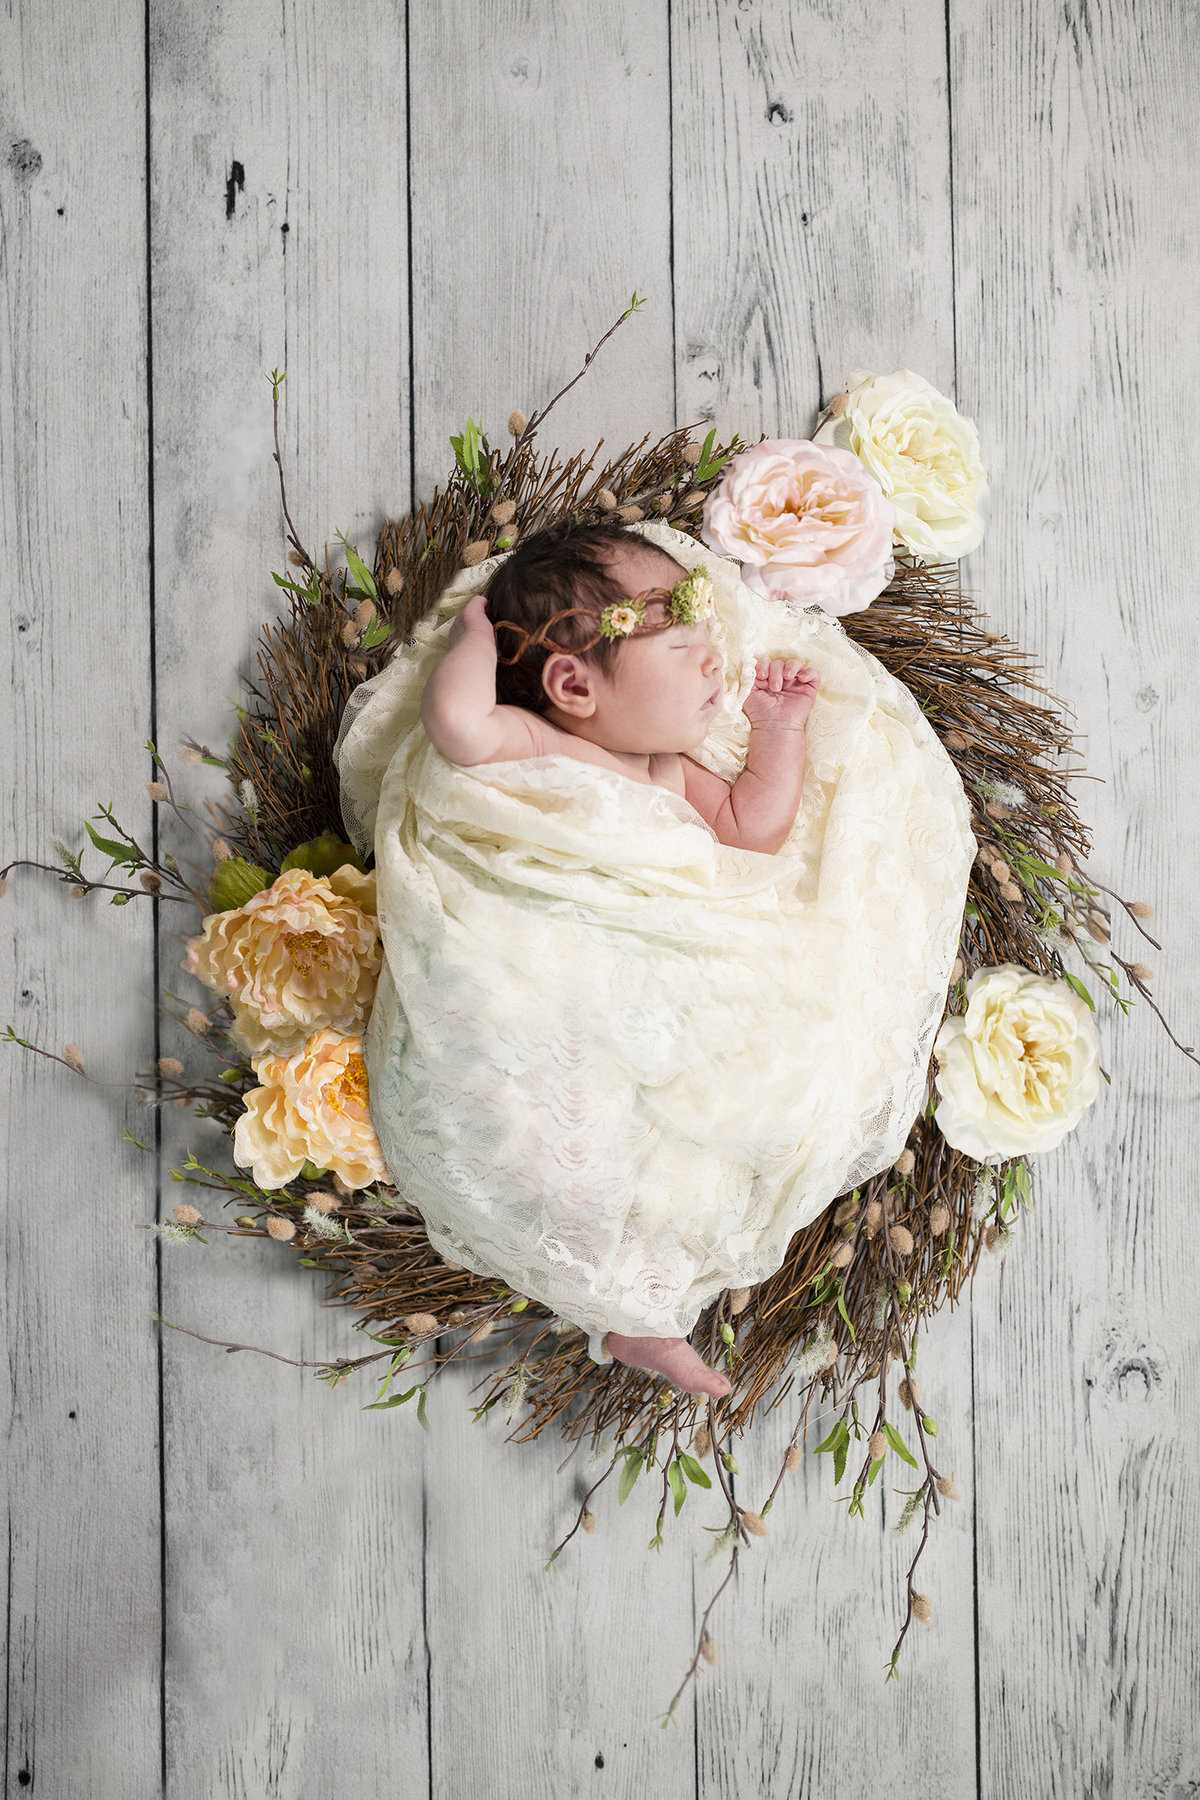 flowers and wreath with newborn